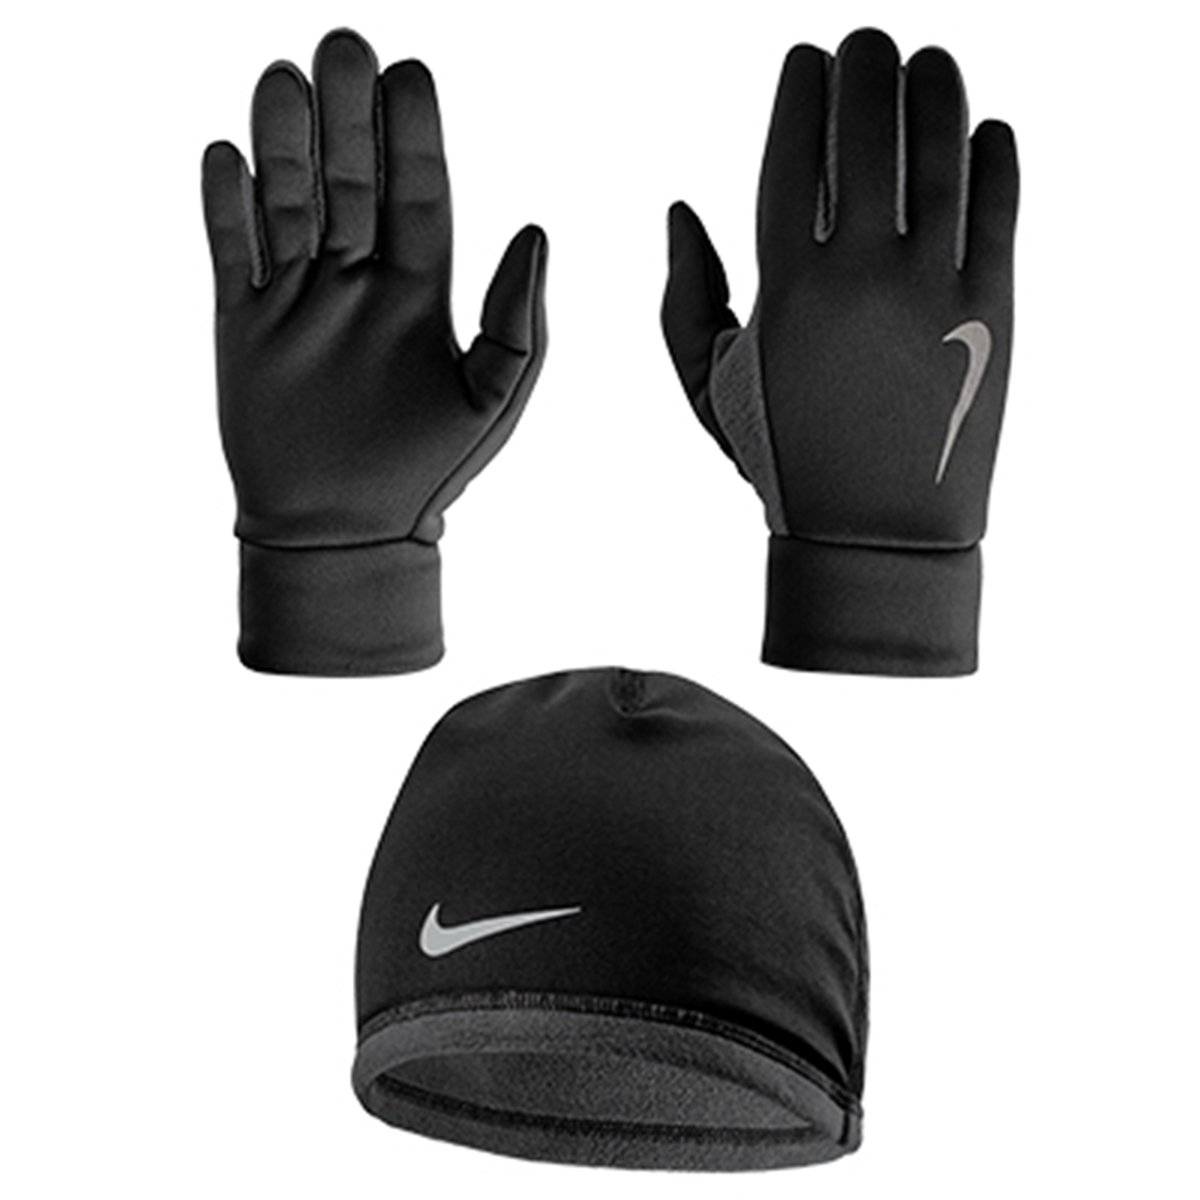 Bilde av Nike Hat And Glove Set Womens nrc320452s 045